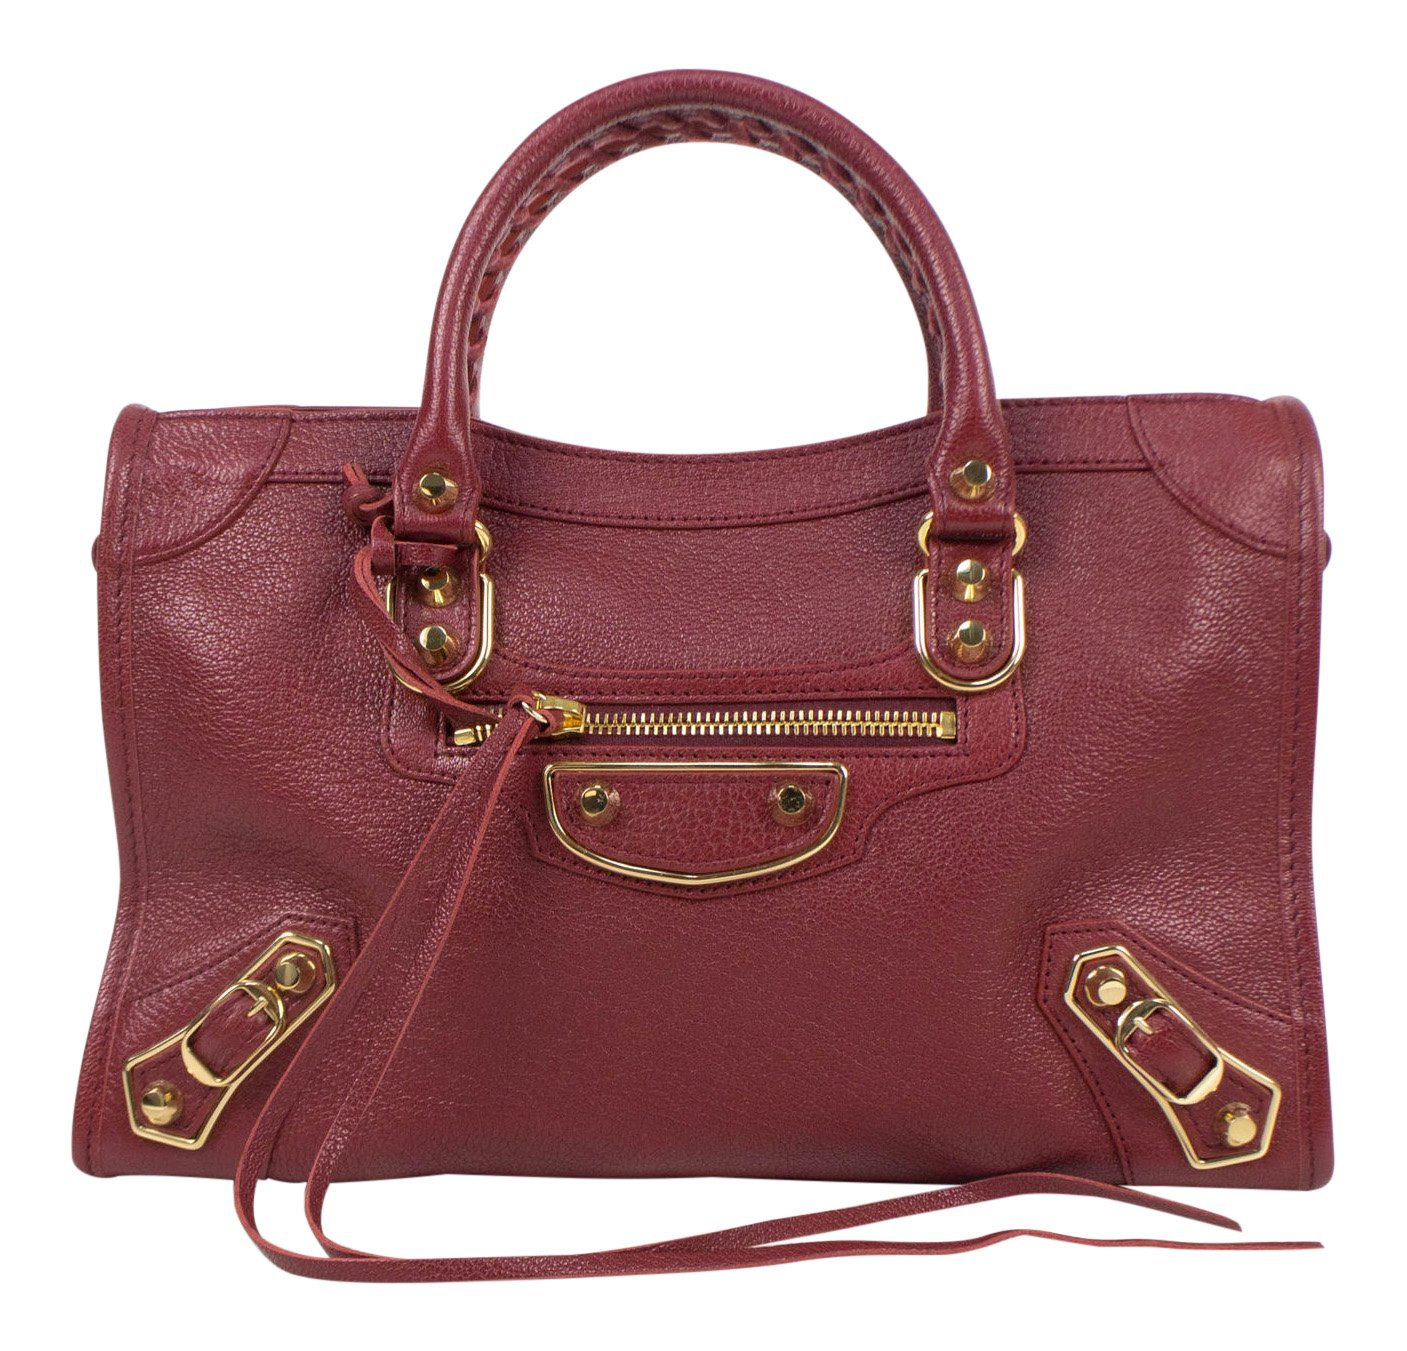 8be78074ea Amazon.com: Balenciaga Red Leather Metallic Edge City Small Shoulder Bag:  Baby